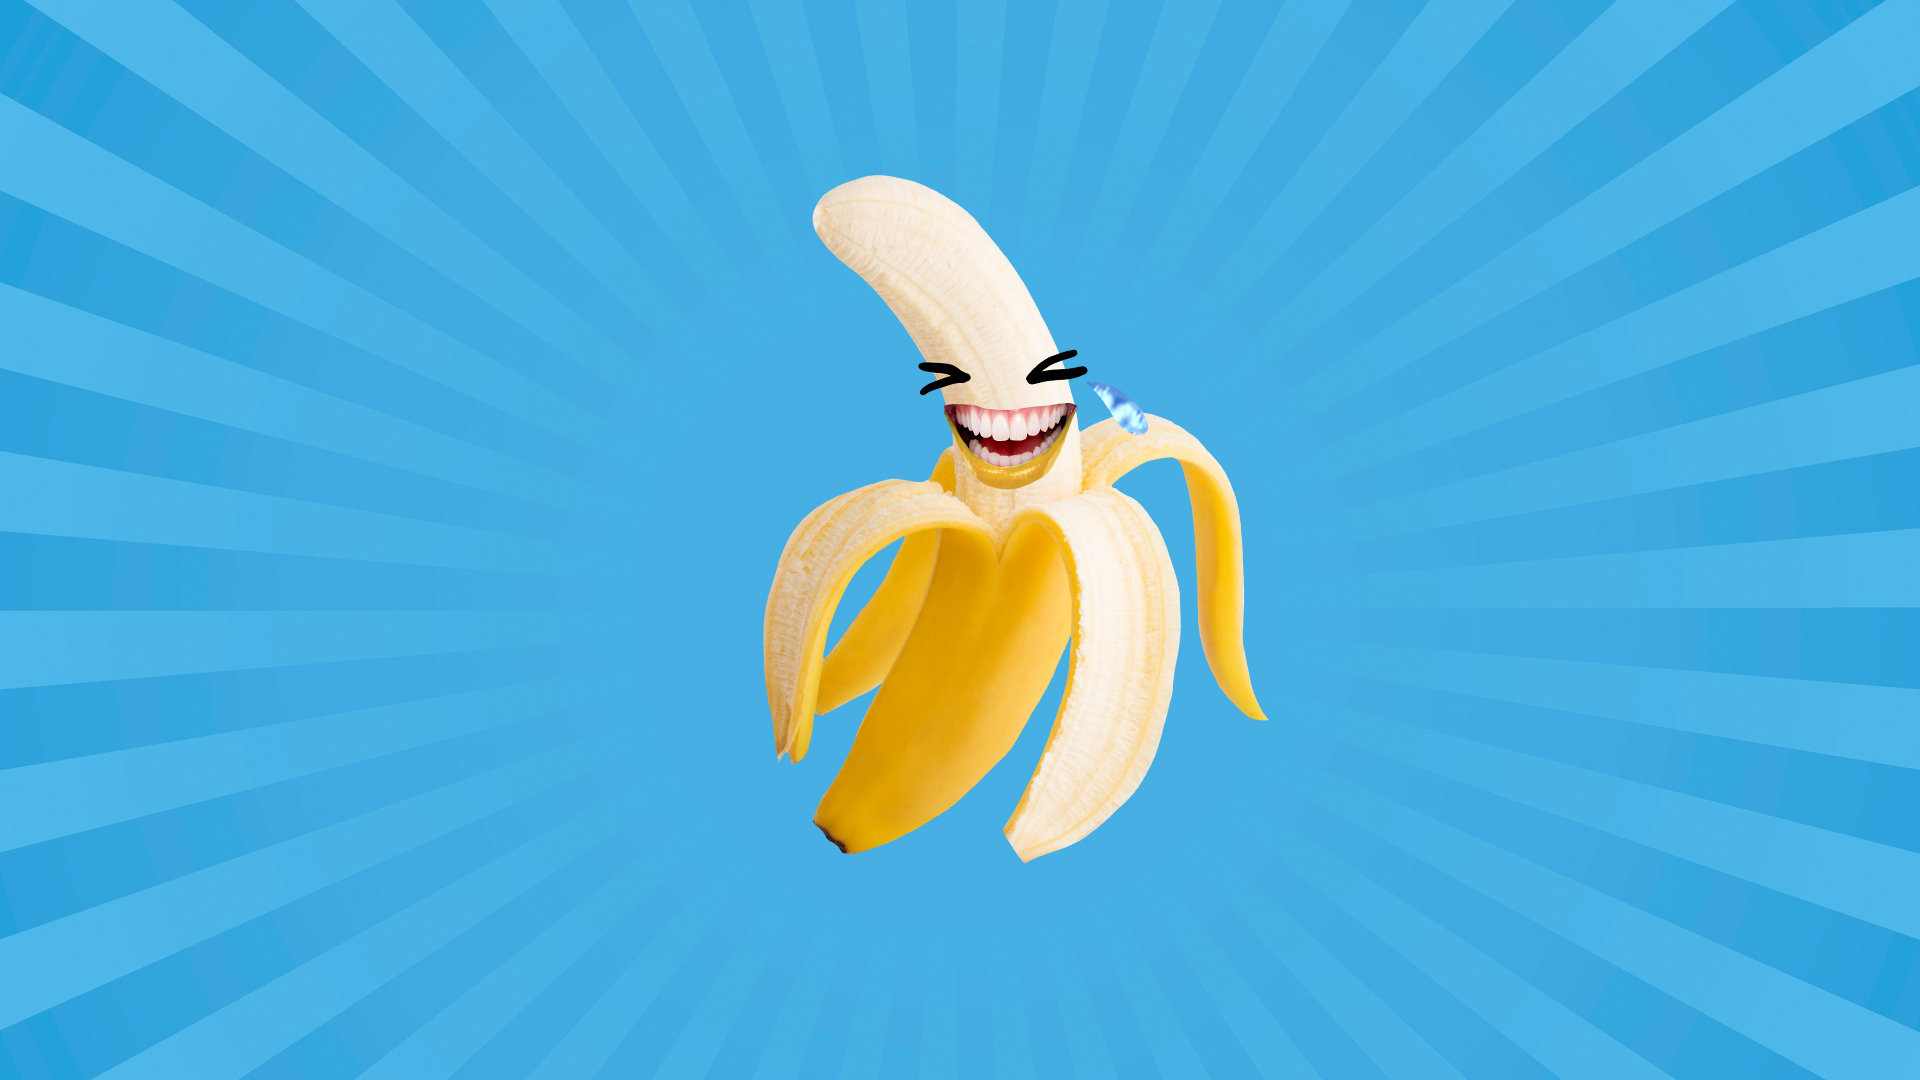 A laughing banana in front of a blue background